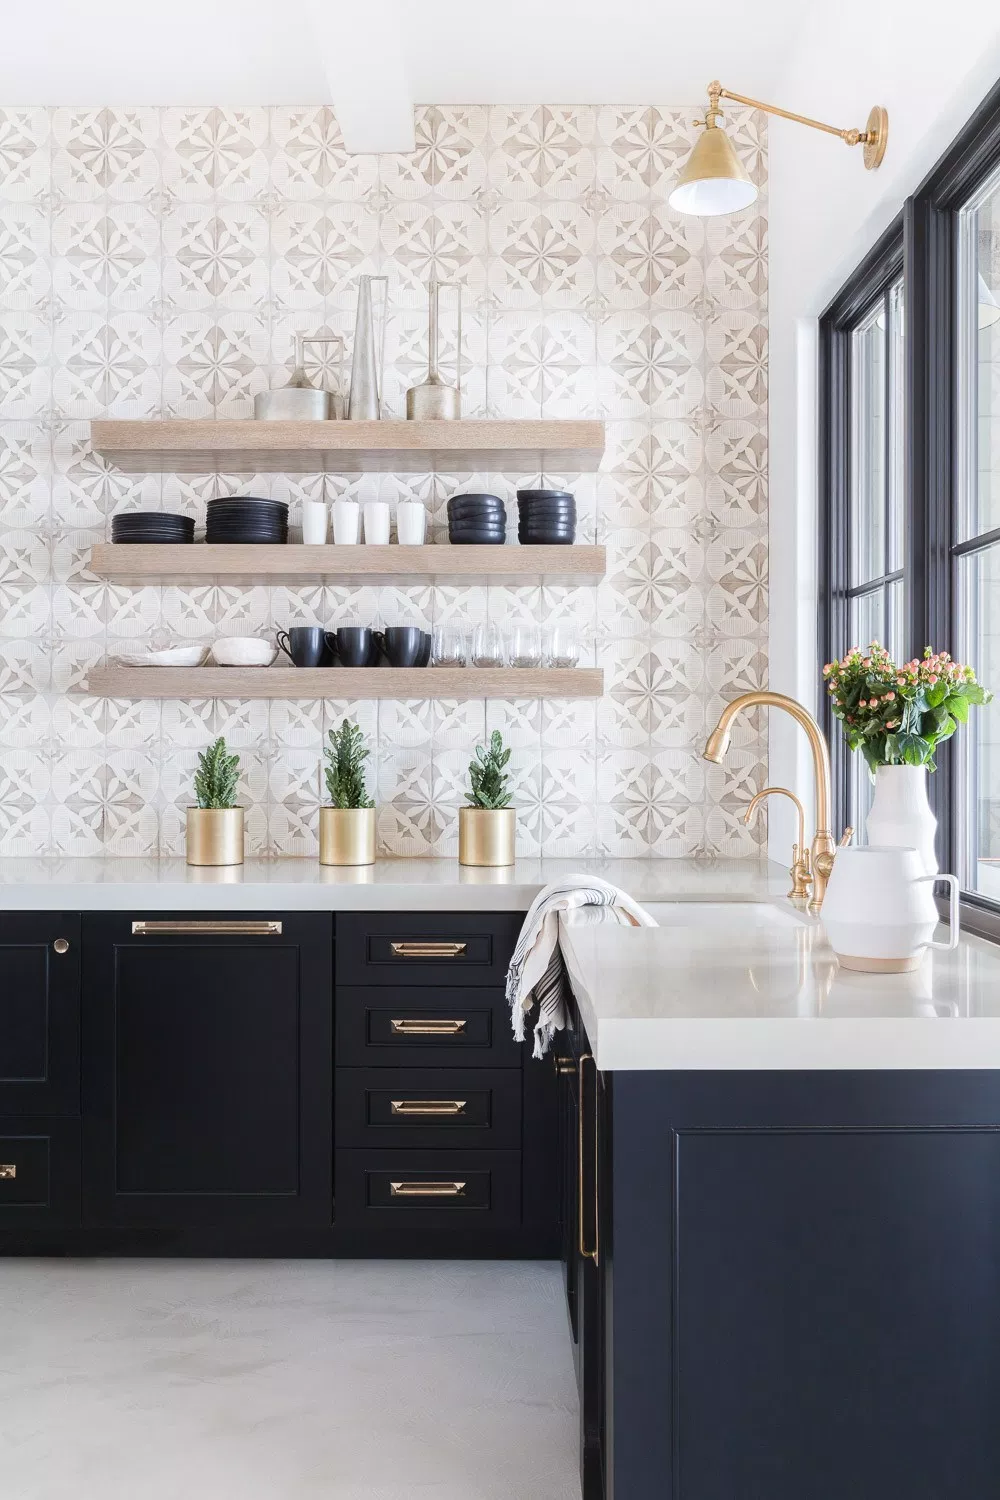 20 Trending Kitchen Accent Wall Ideas Tips & Photos